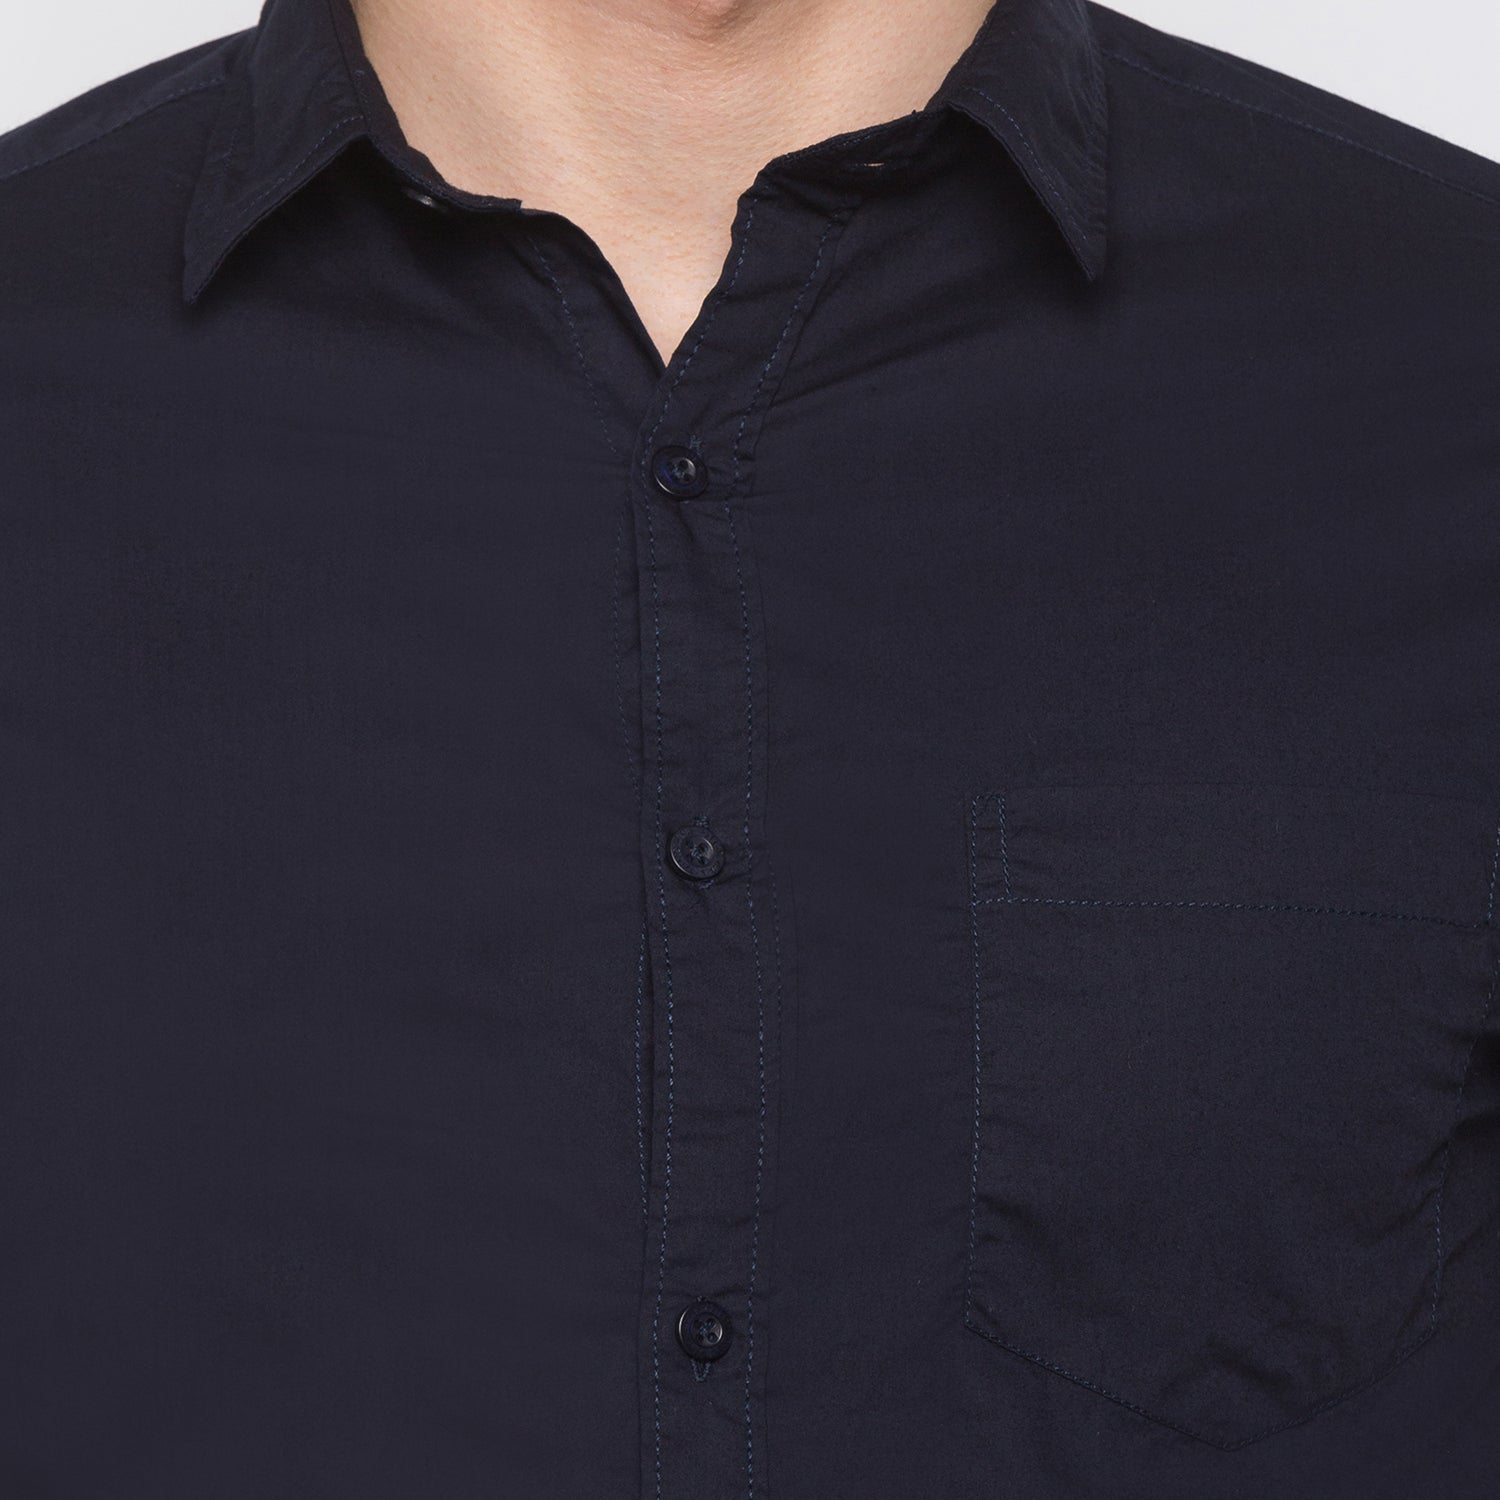 Globus Navy Blue Solid Shirt5